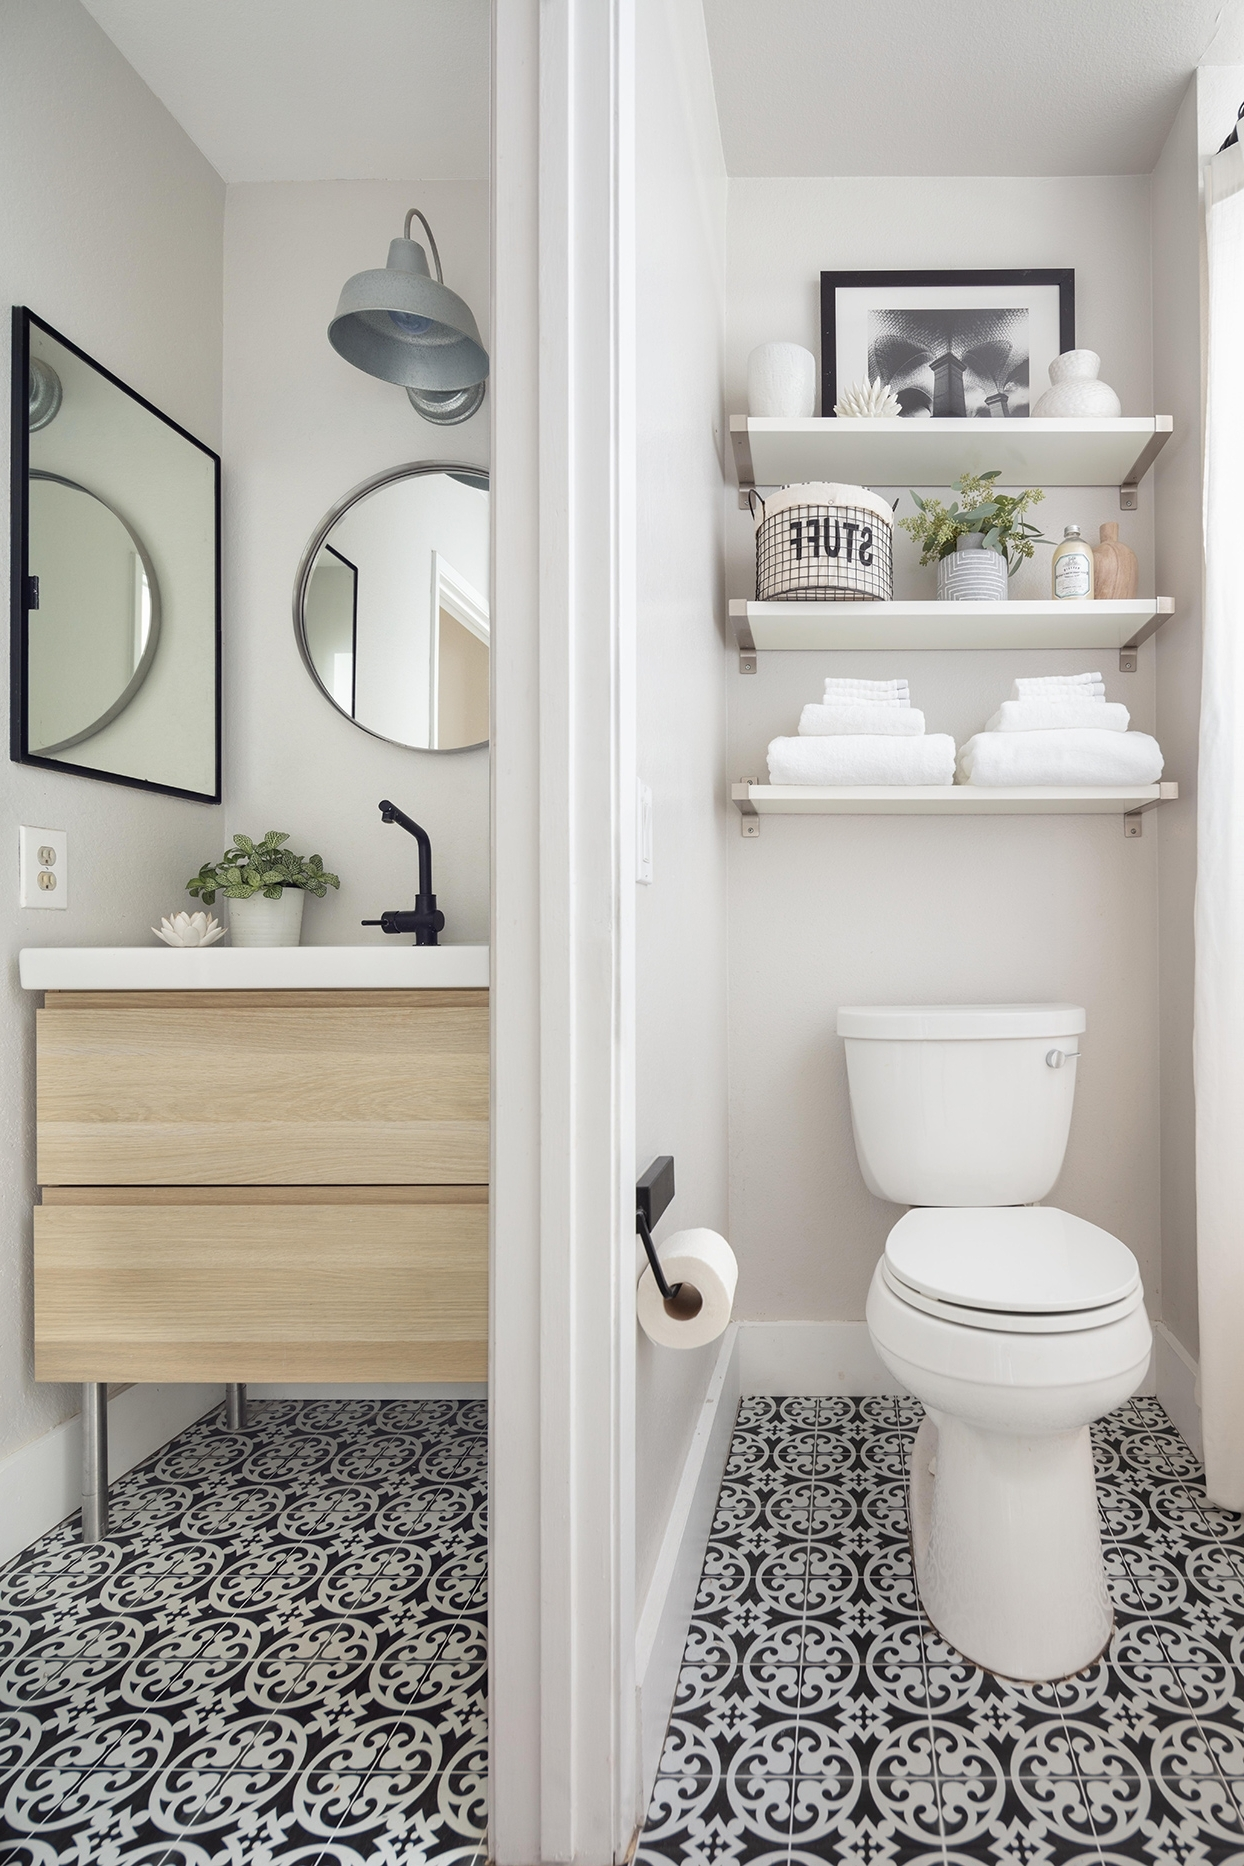 How To Plan A Bathroom Layout For A Functional Space Universal Bathroom Design Guidelines